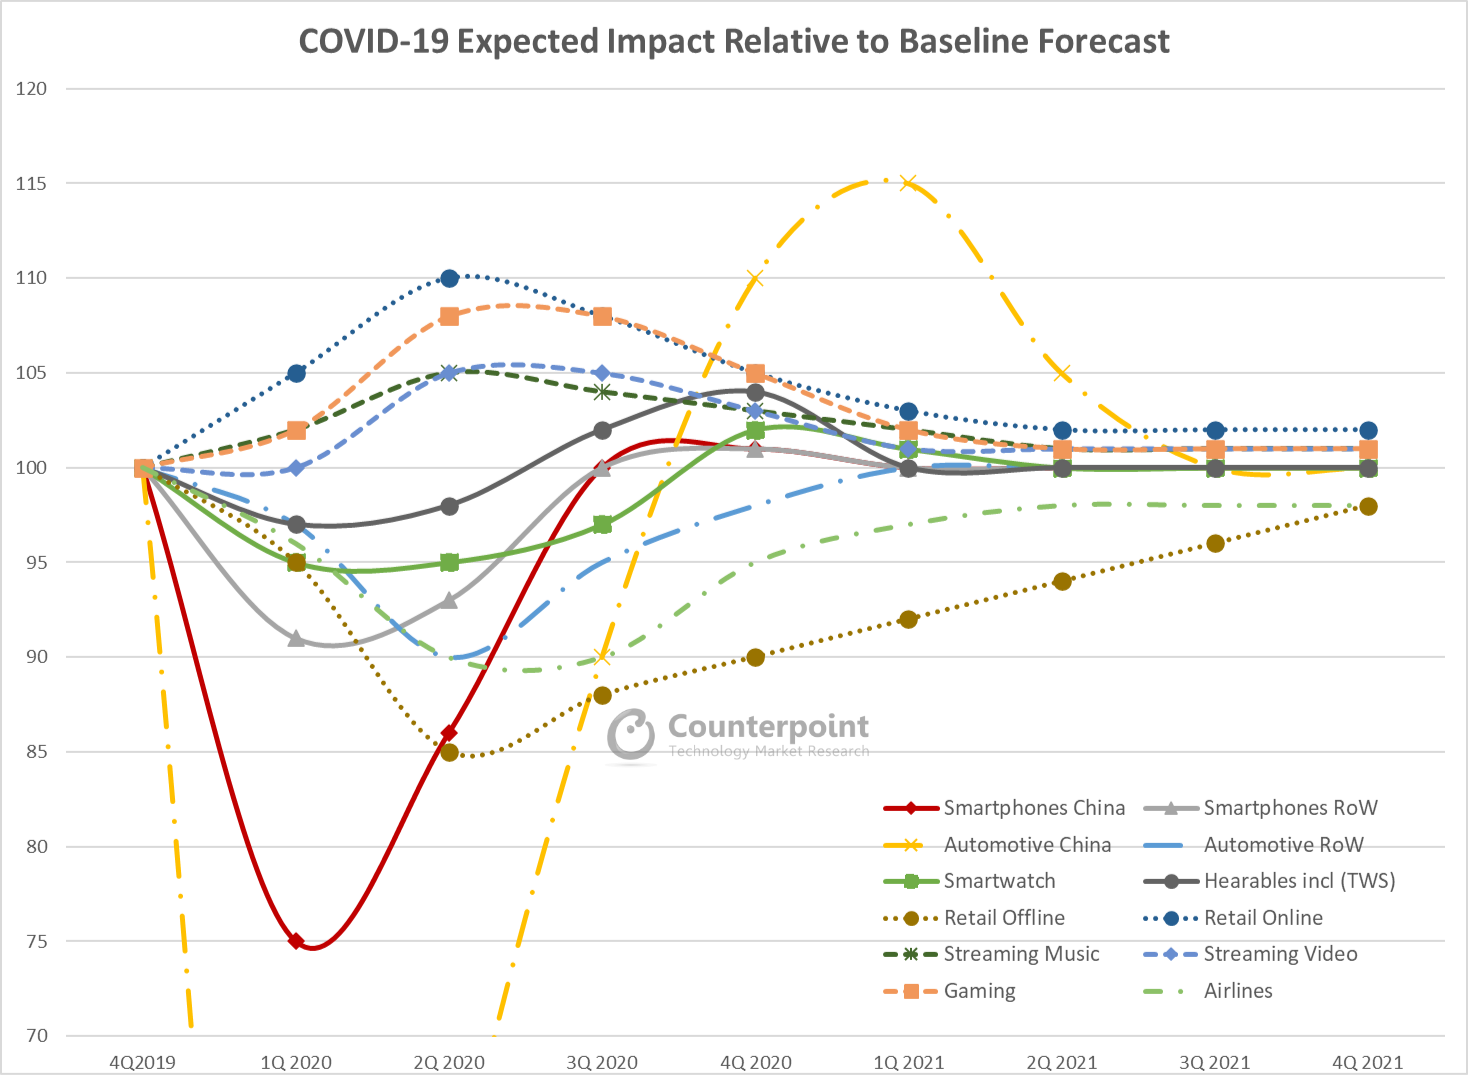 Counterpoint Coronavirus COVID-19 Expected Impact Relative to Baseline Forecast